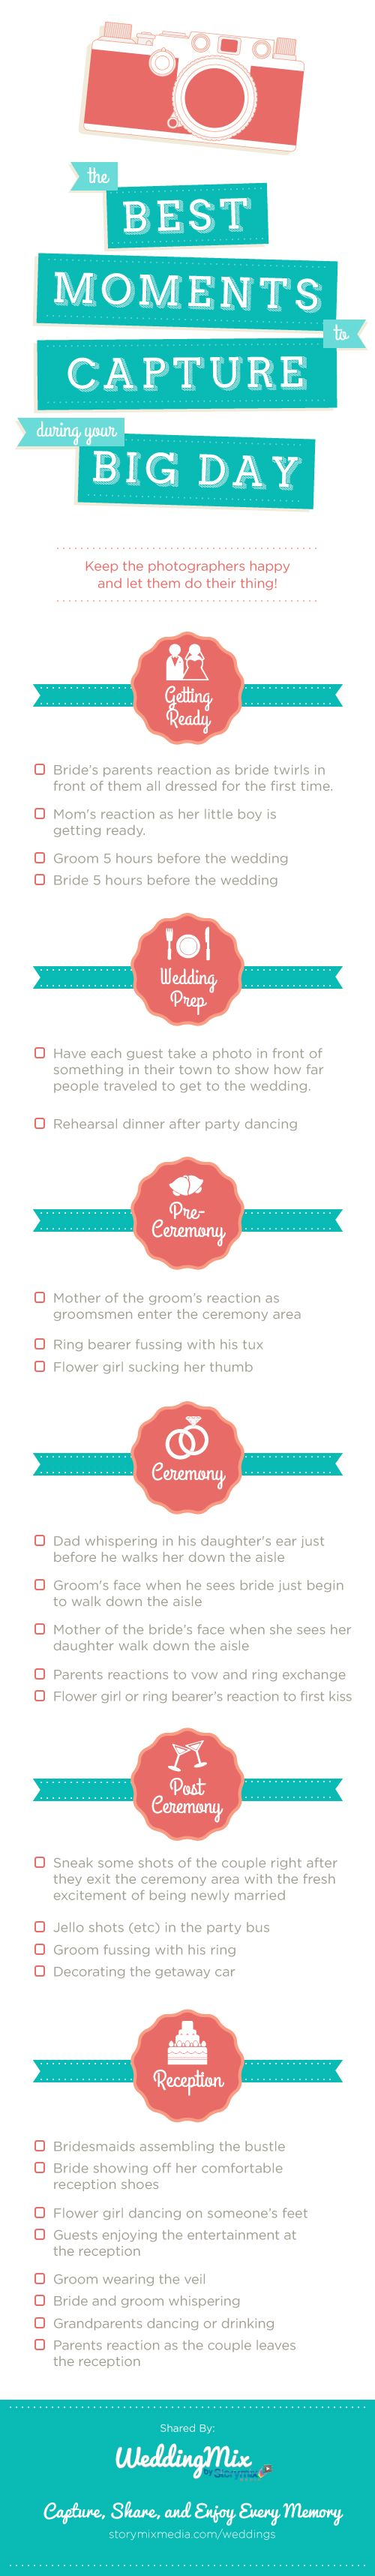 The photos you might have forgotten to take on your wedding day! I definitely never thought of some of these.